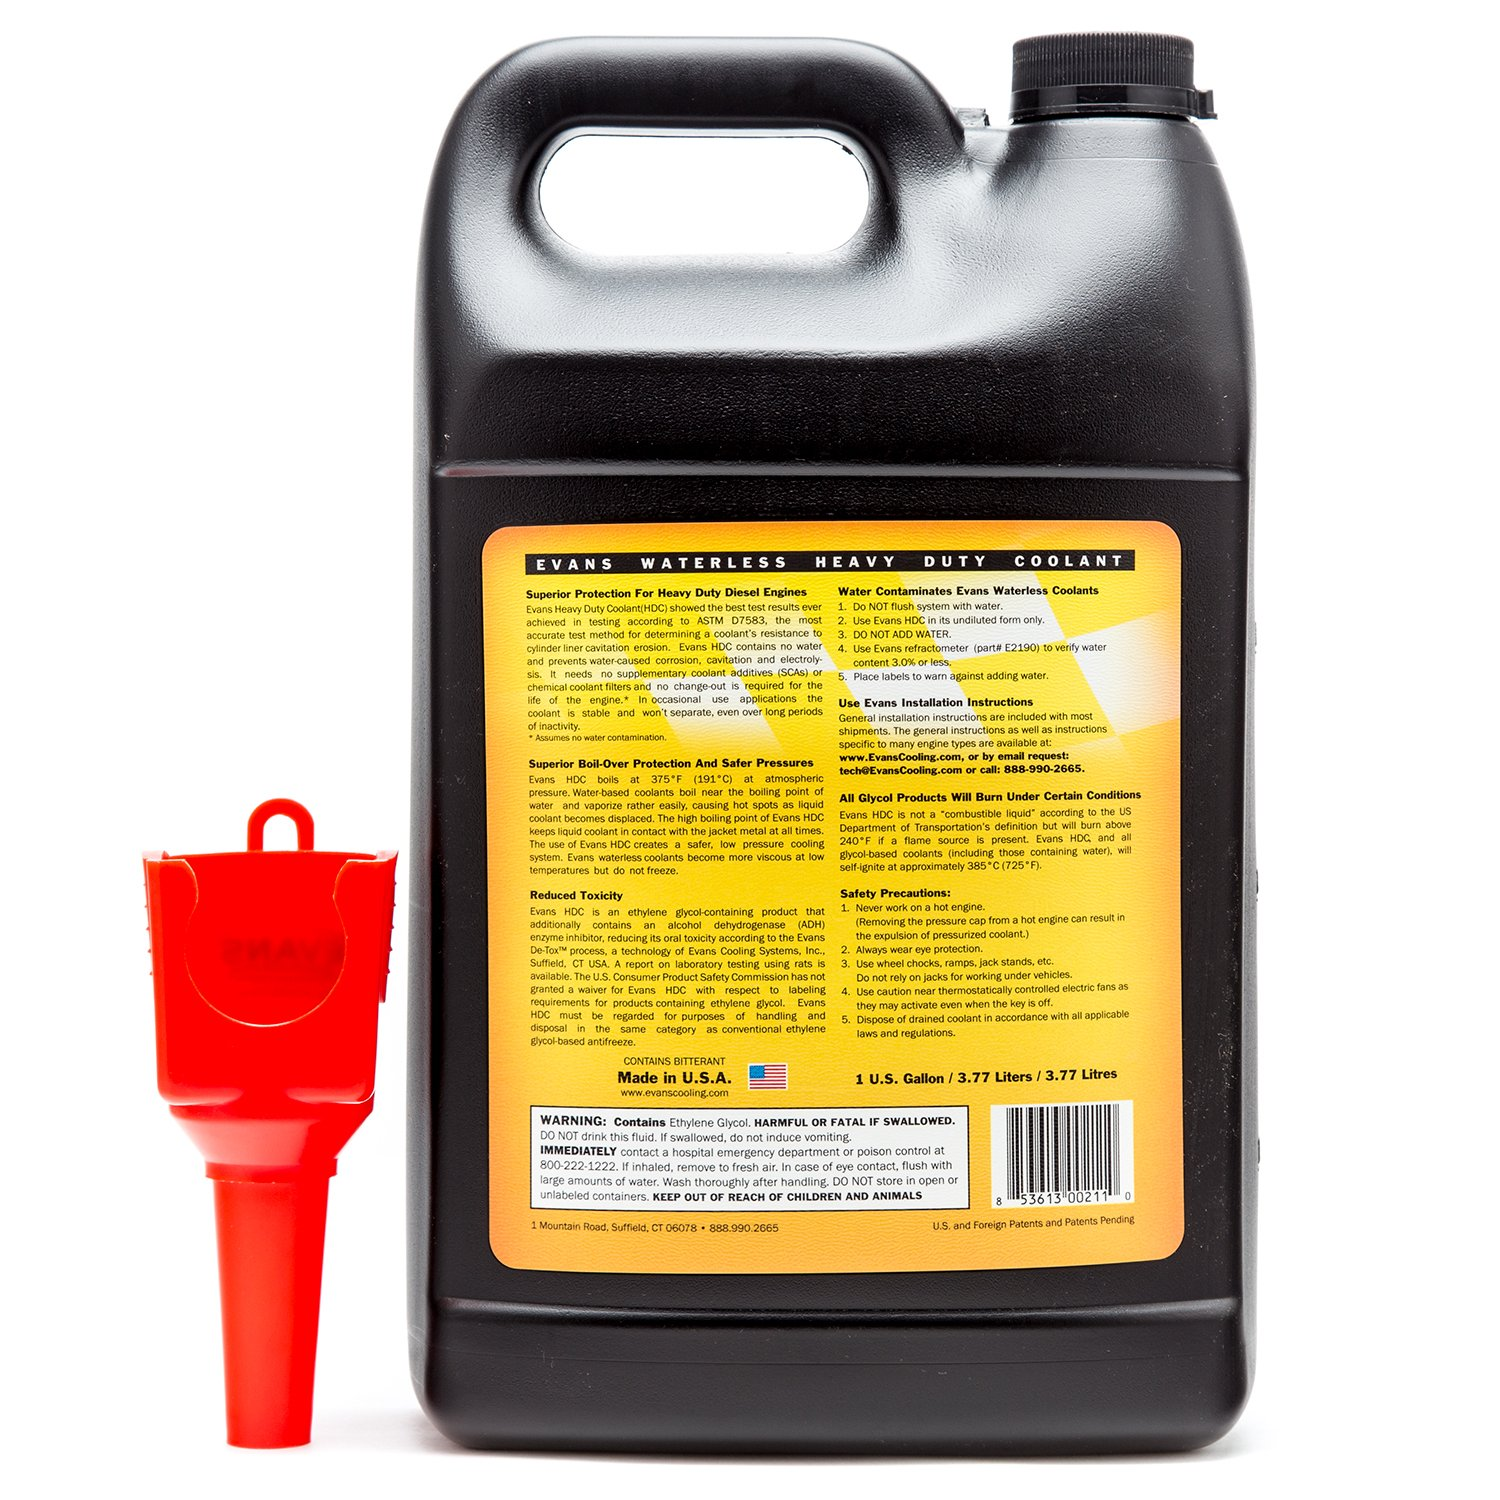 Amazon.com: EVANS Cooling Systems EC61001 Heavy Duty Waterless Engine  Coolant with Funnel, 128 fl. oz.: Automotive